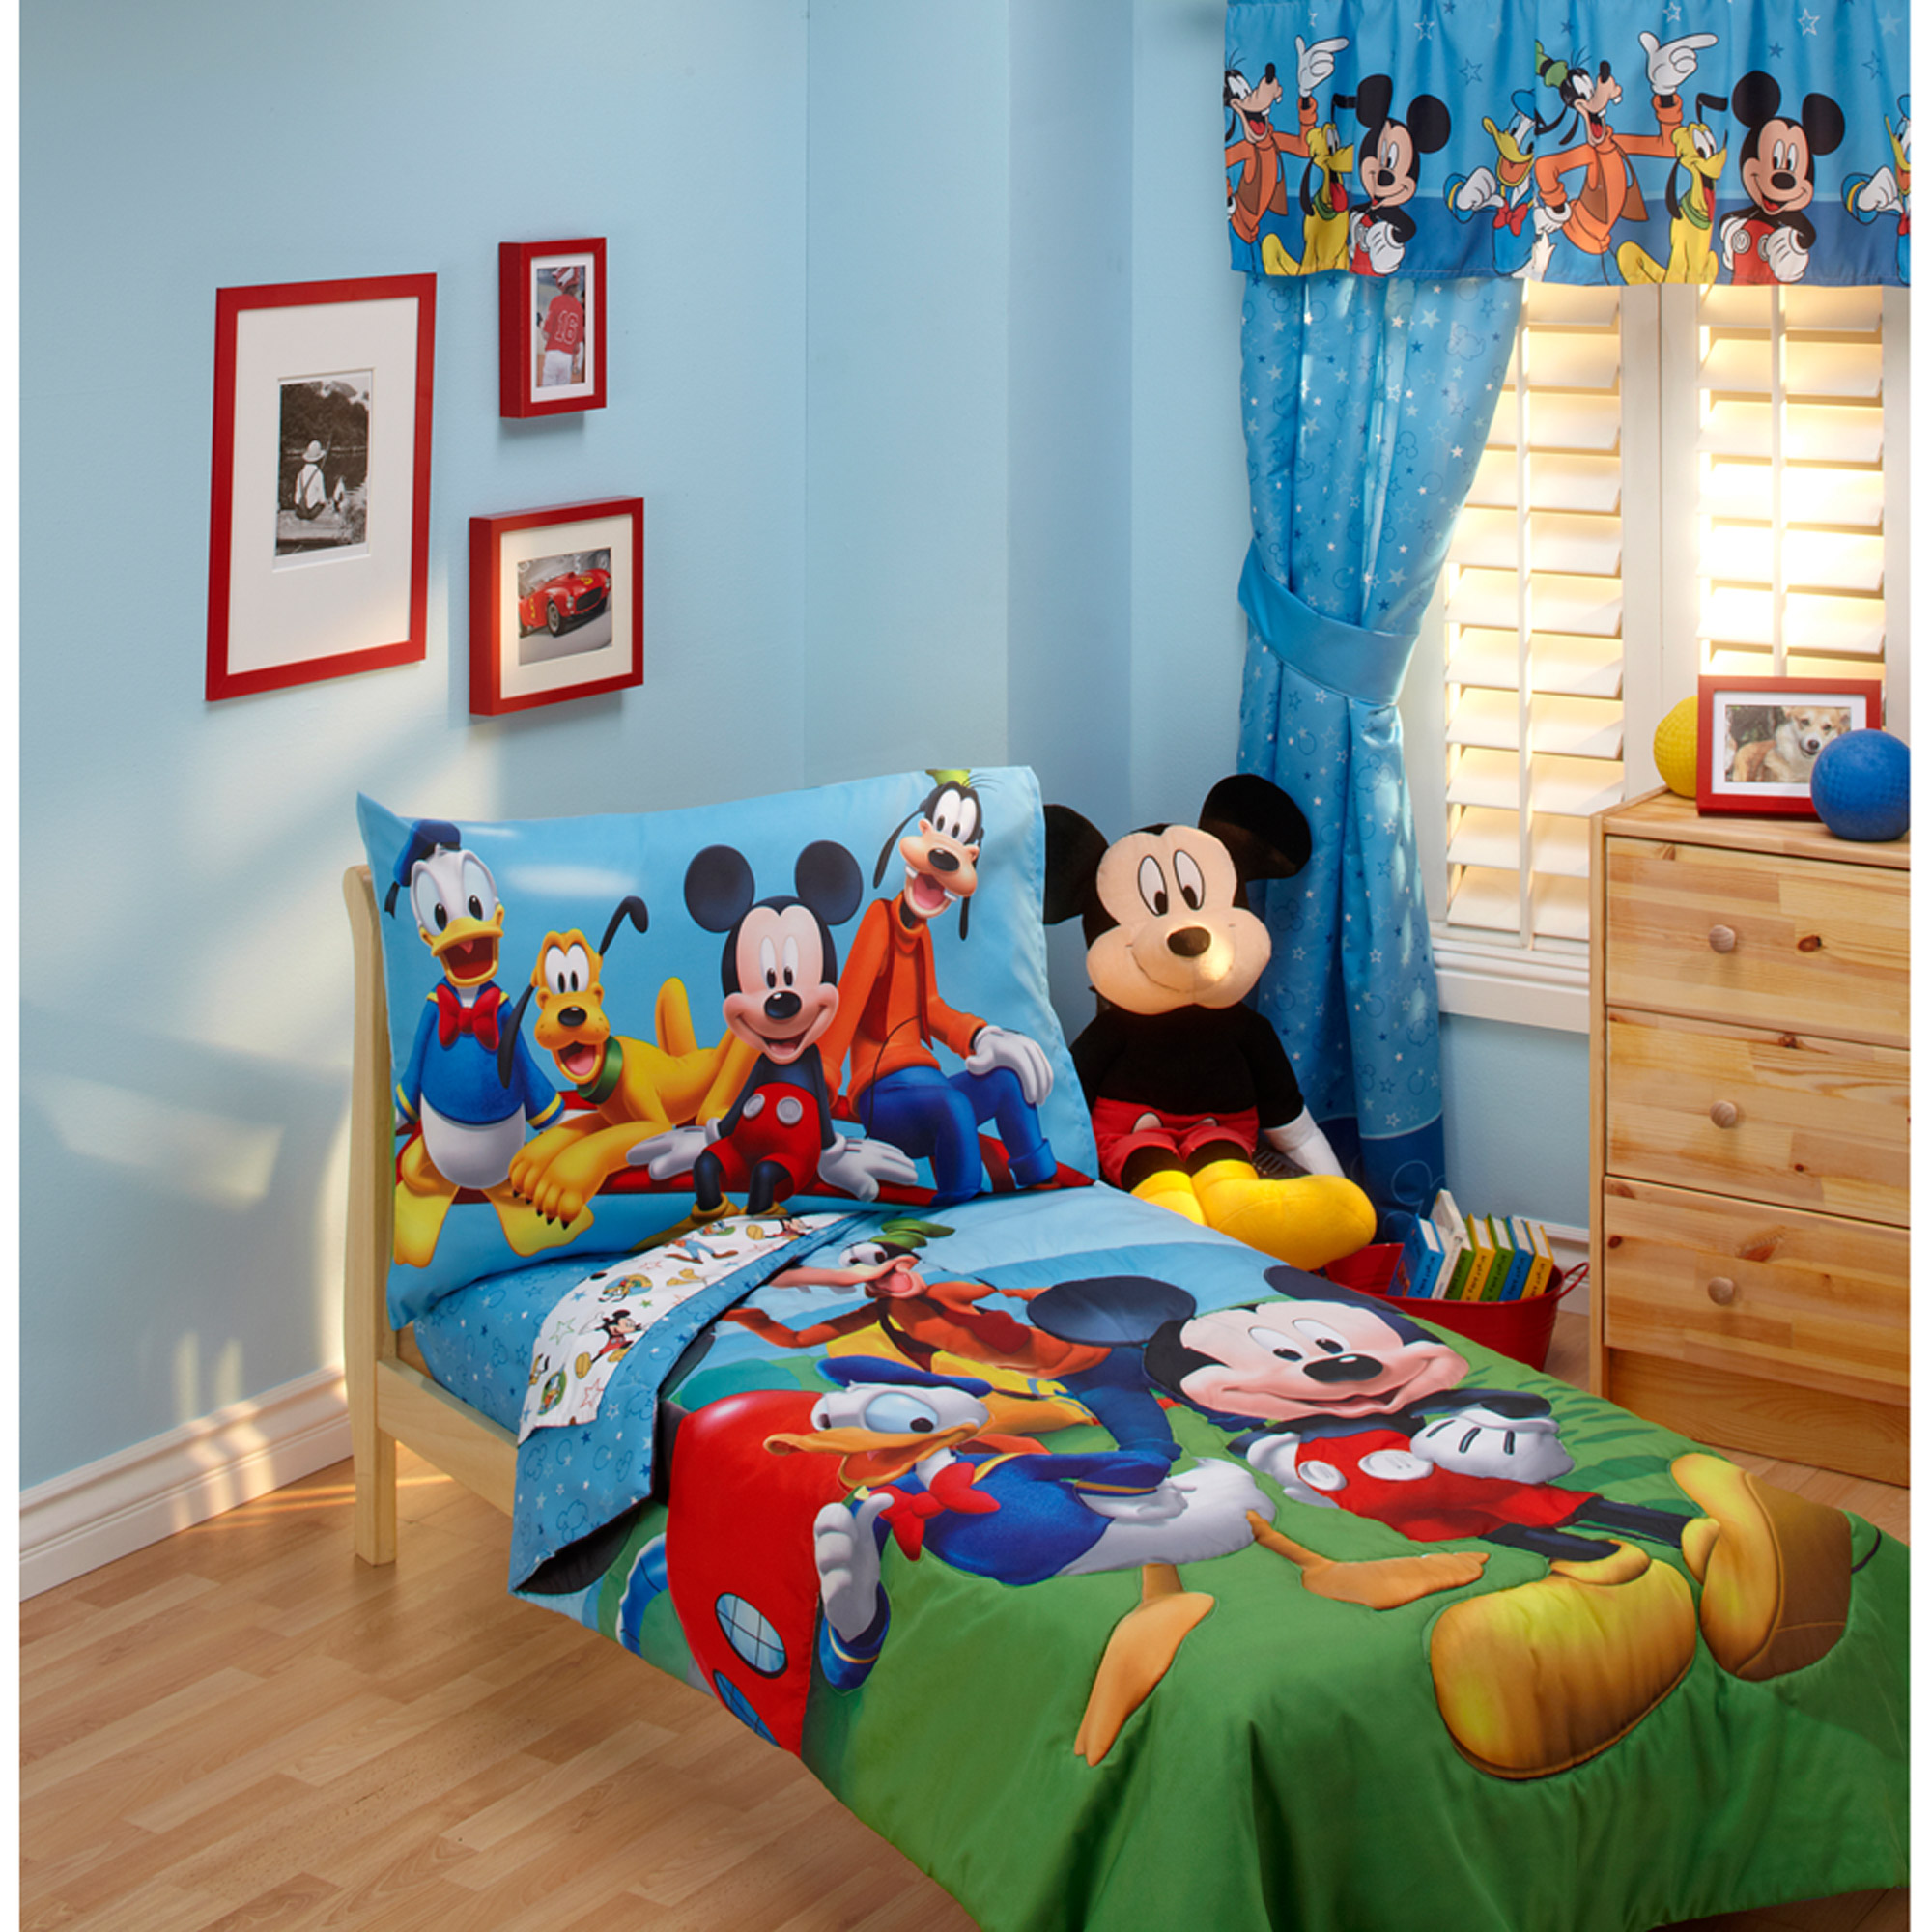 disney mickey mouse playground pals 4pc toddler bedding set rh walmart com mickey mouse themed toddler room mickey mouse toddler room in a box